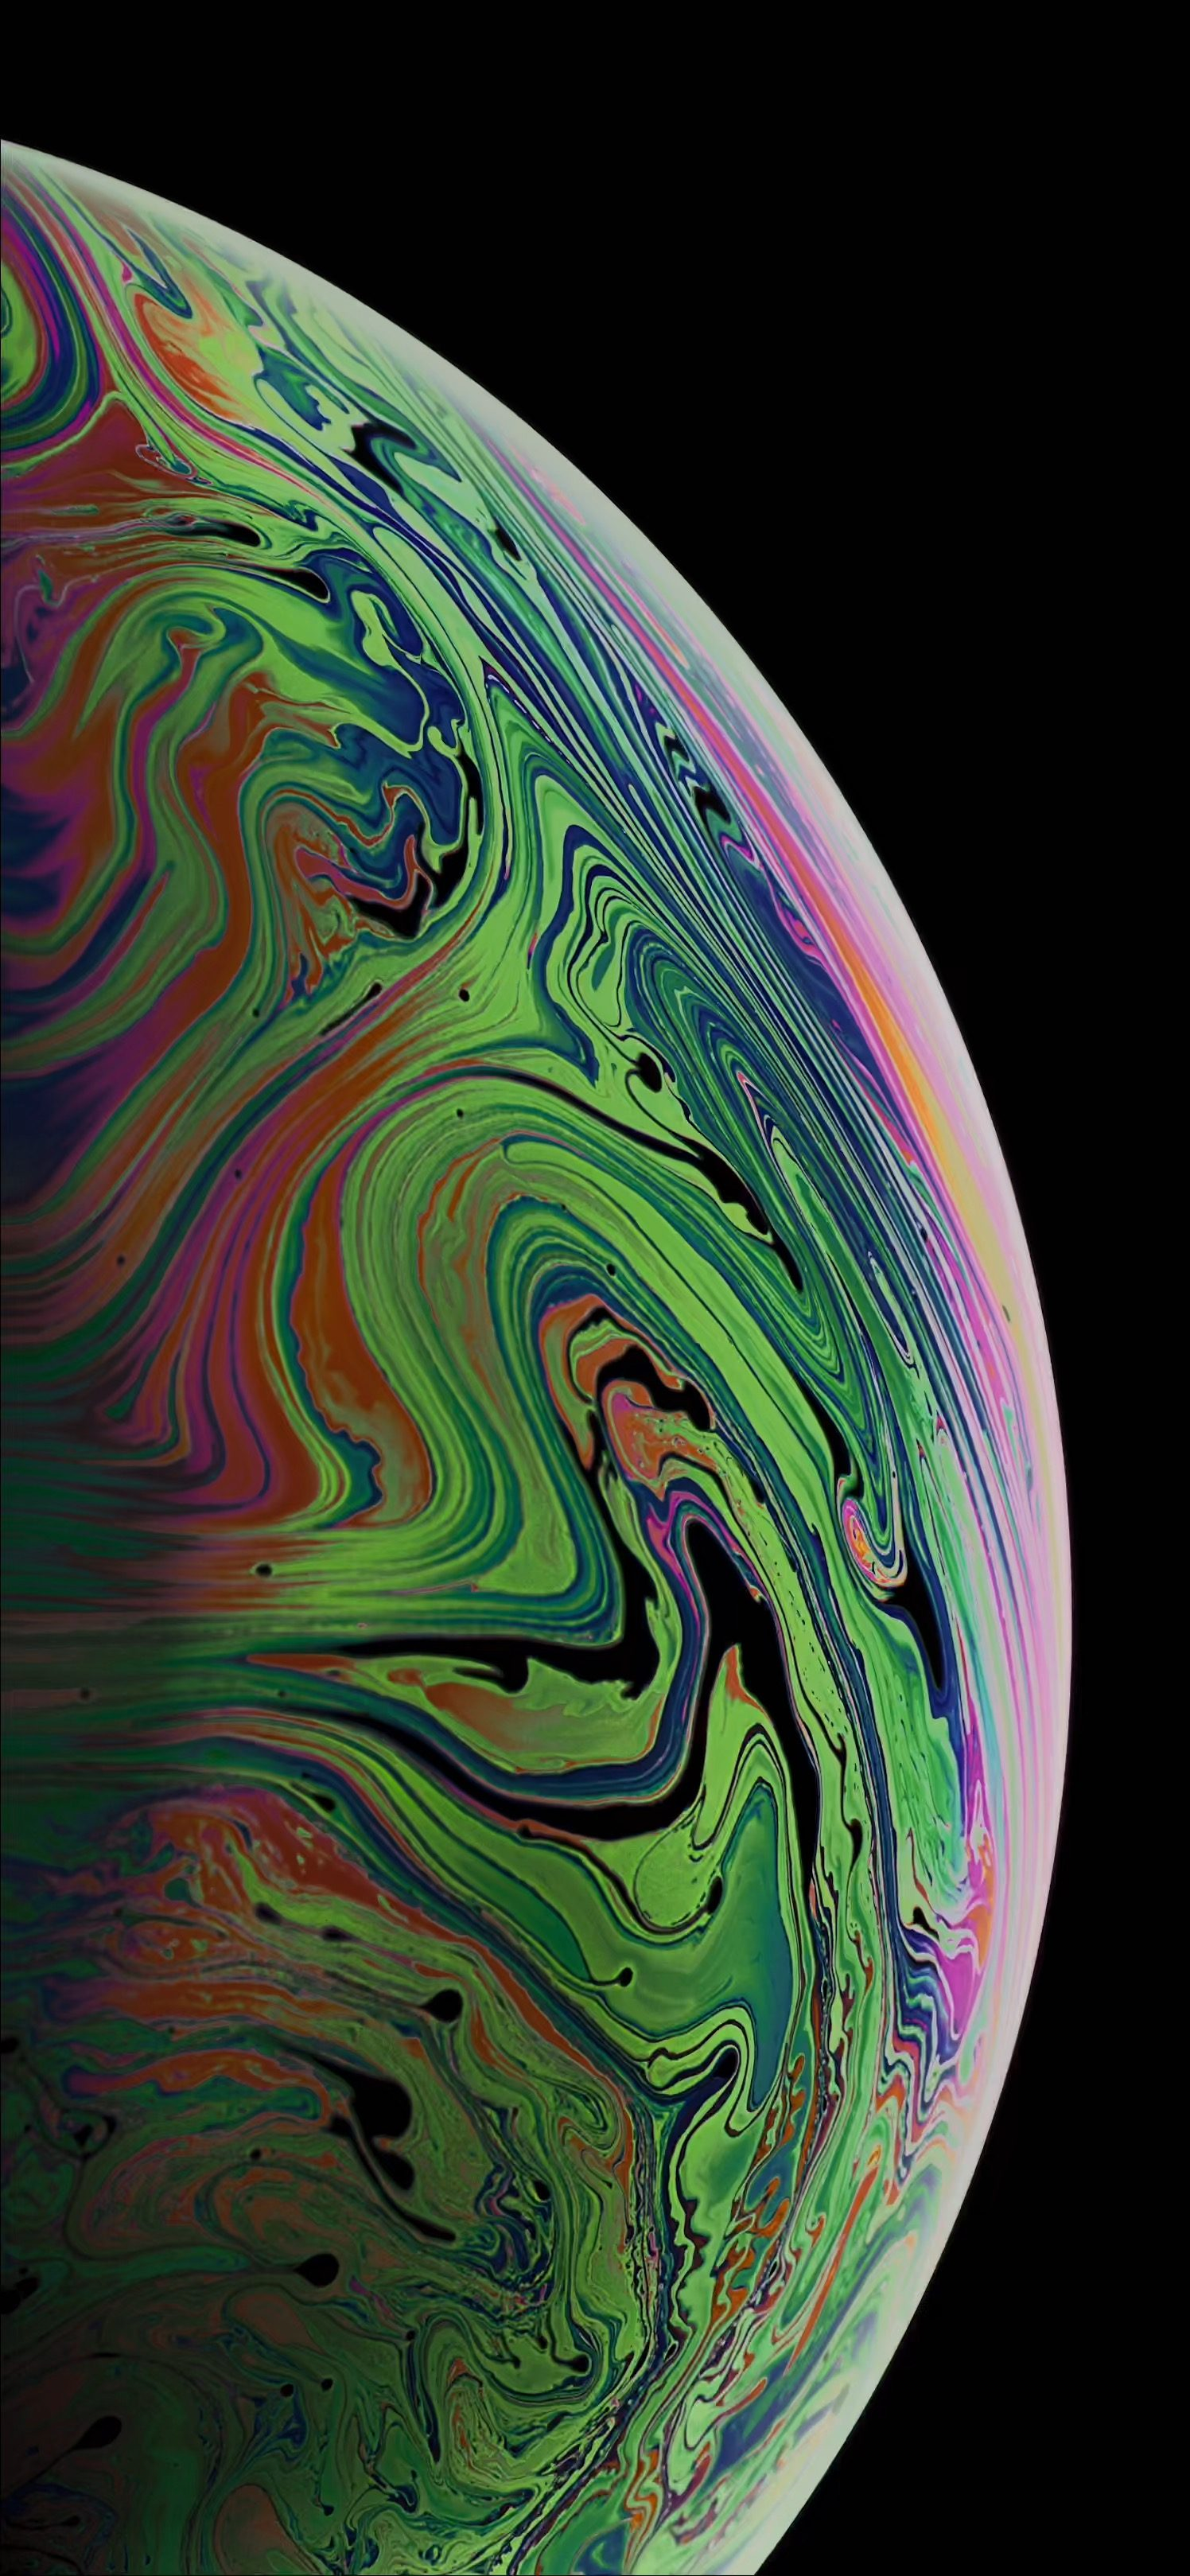 Download All New iPhone Xs, Xs Max, Xr Wallpapers  Live Wallpapers [Full Resolution]  NaldoTech